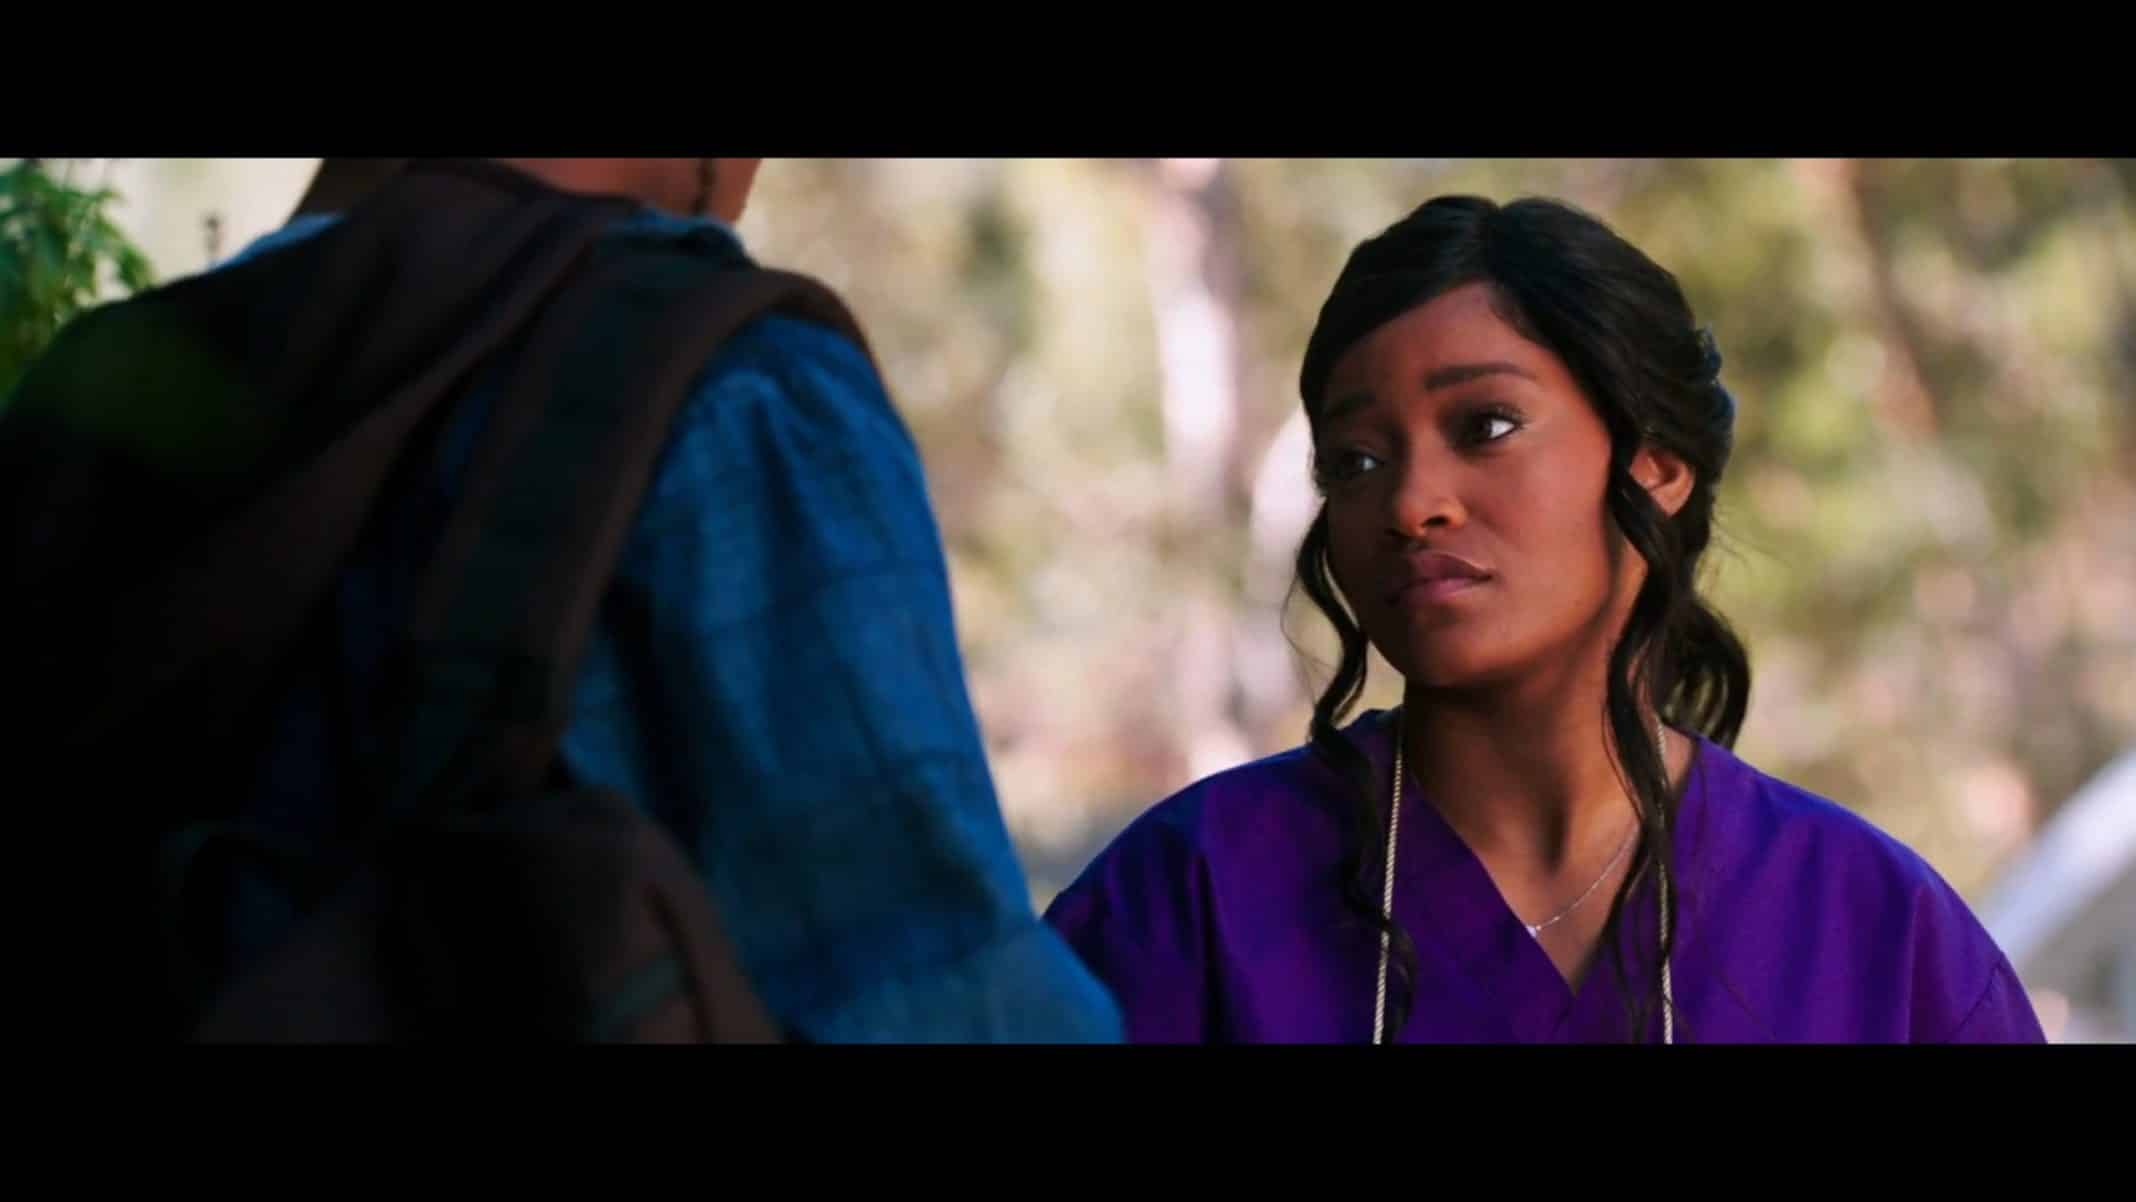 Sky (KeKe Palmer) growing tired of Deandre not being the kind of man she needs.